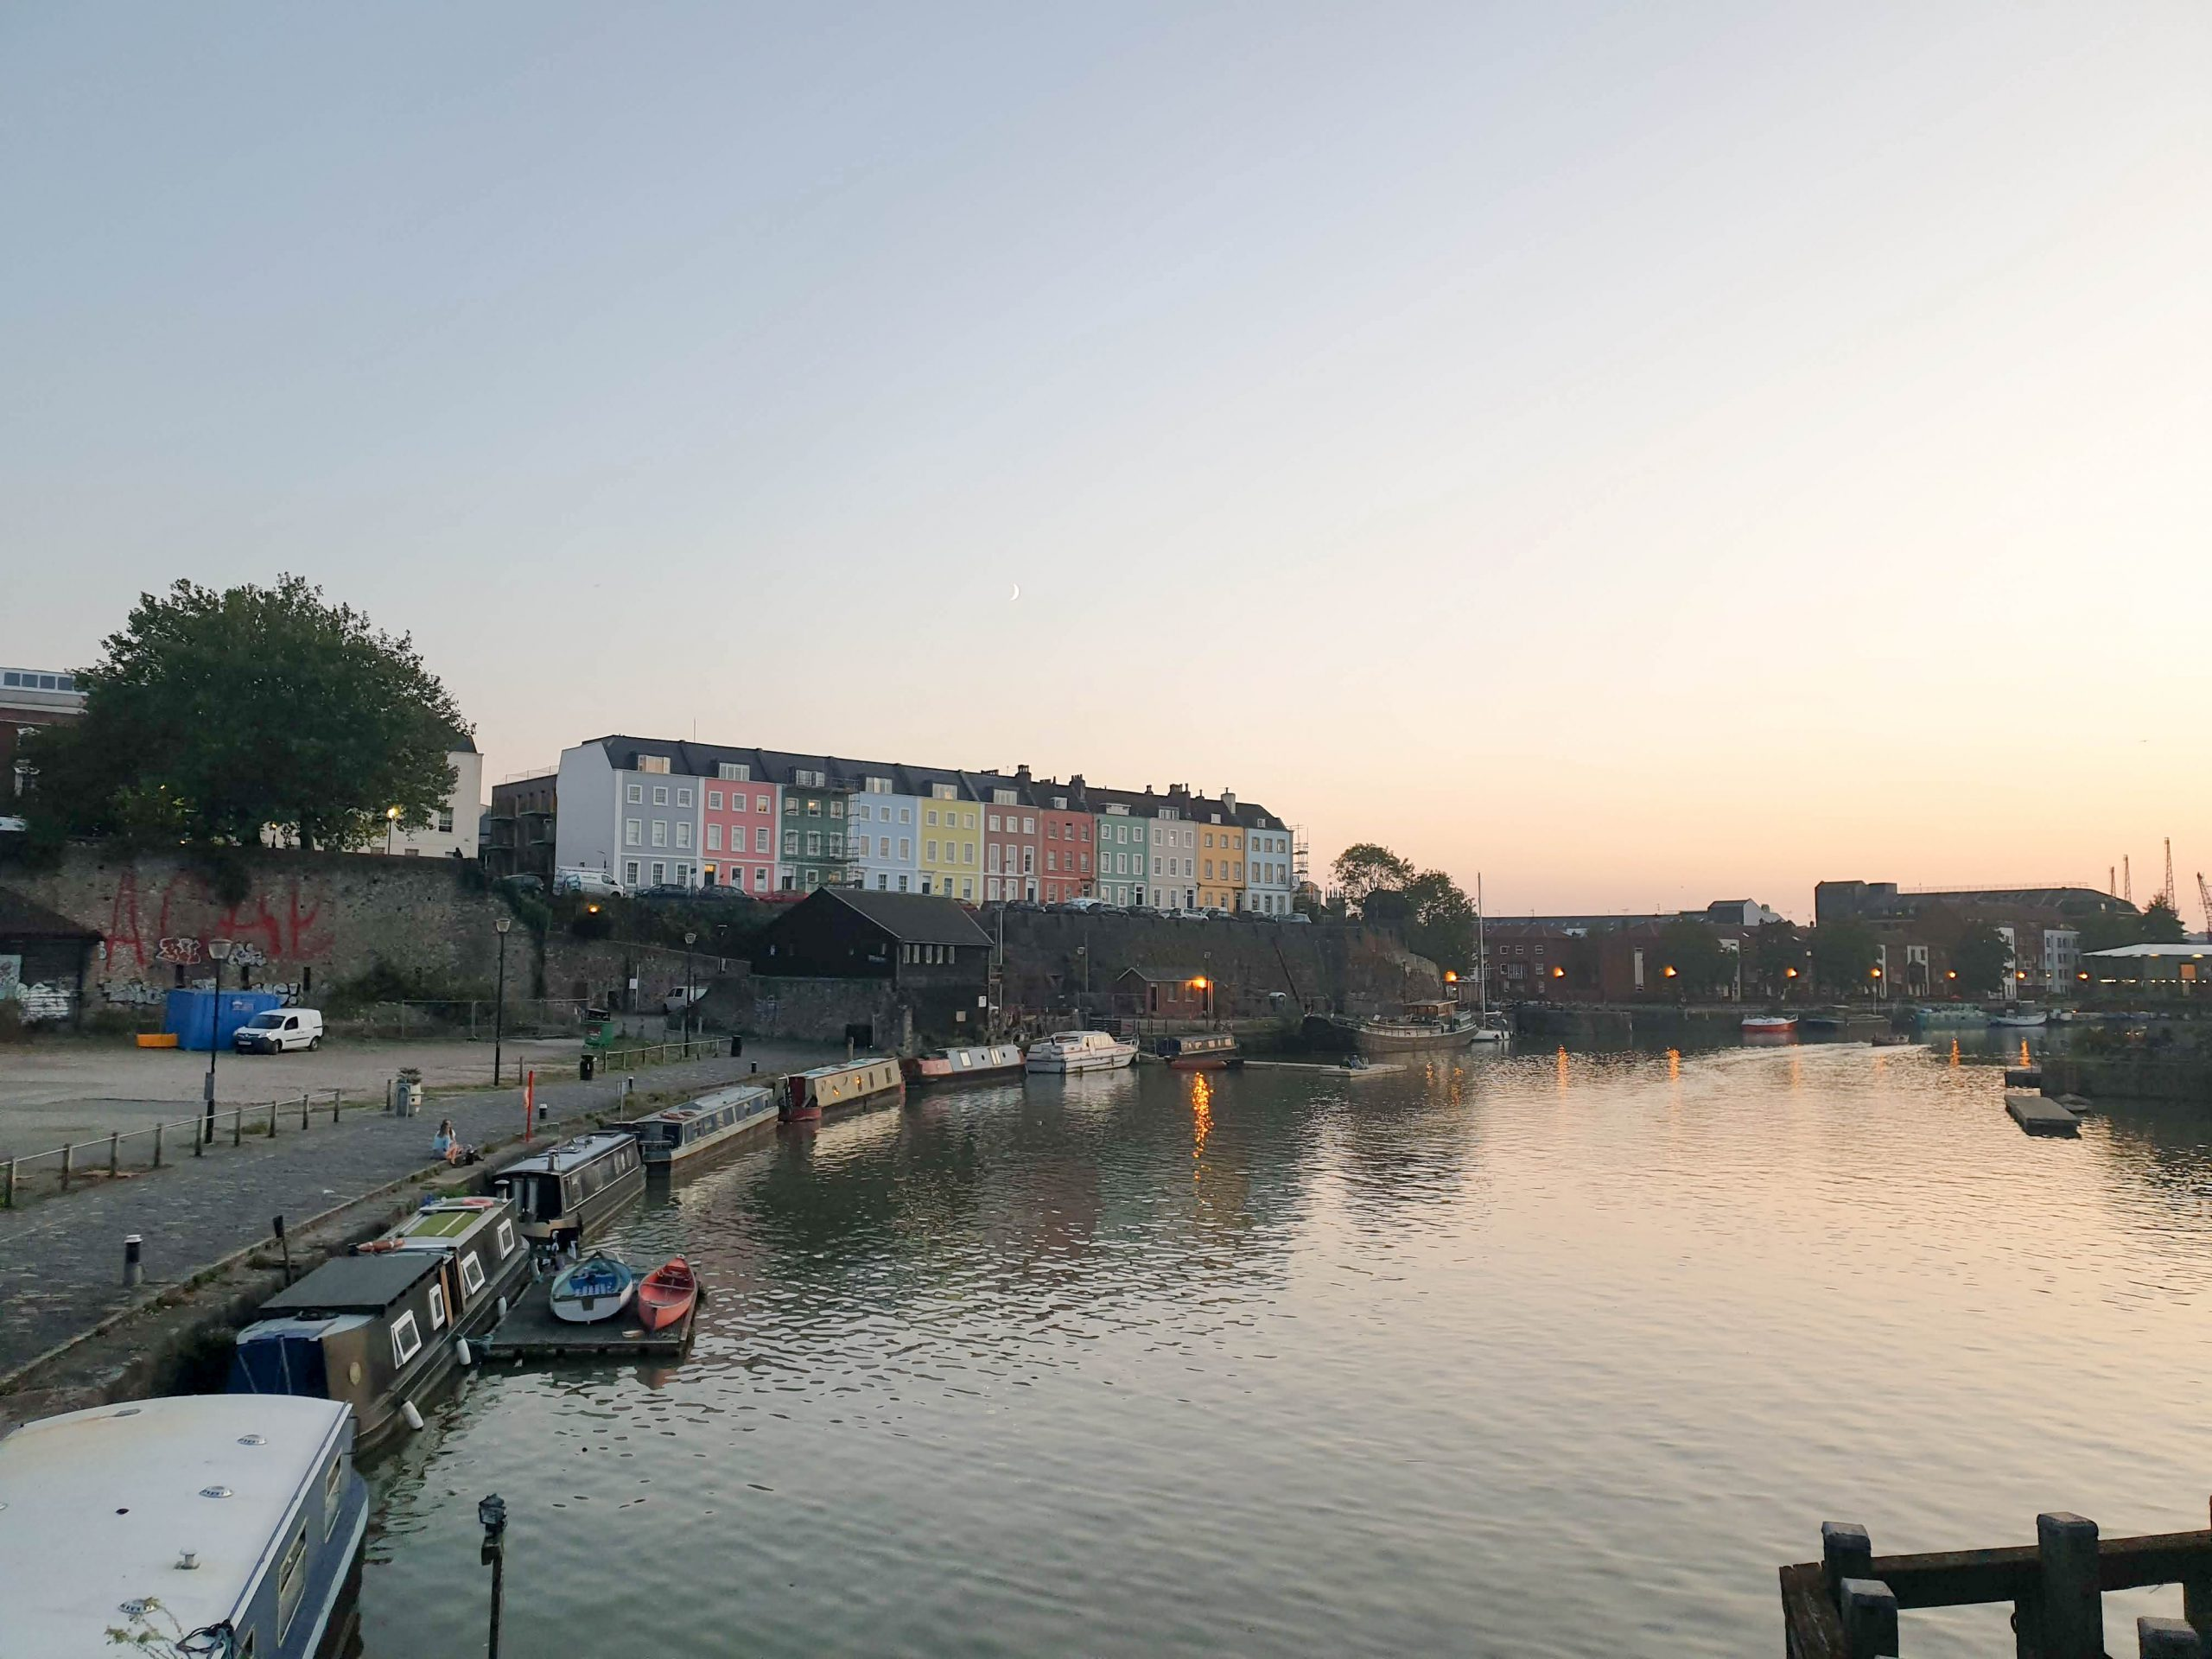 Harbourside and colourful houses in Bristol, UK